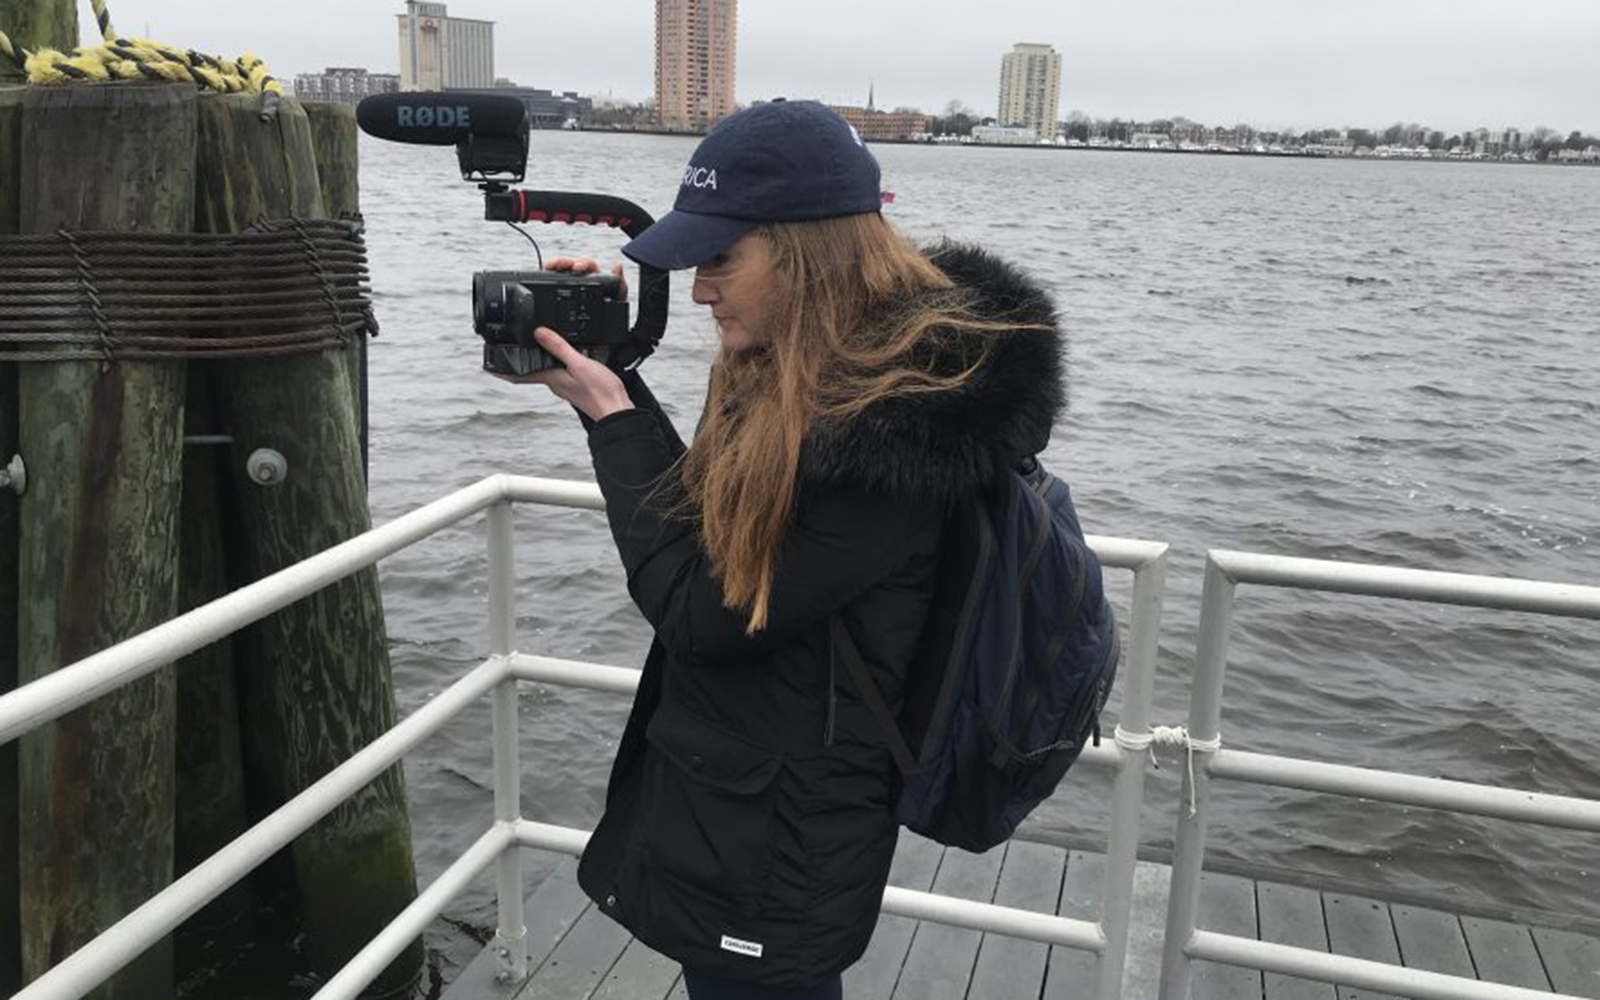 Michelle Wax '12 traveled the US for a new documentary film about the elusive nature of happiness (courtesy of Michelle Wax).